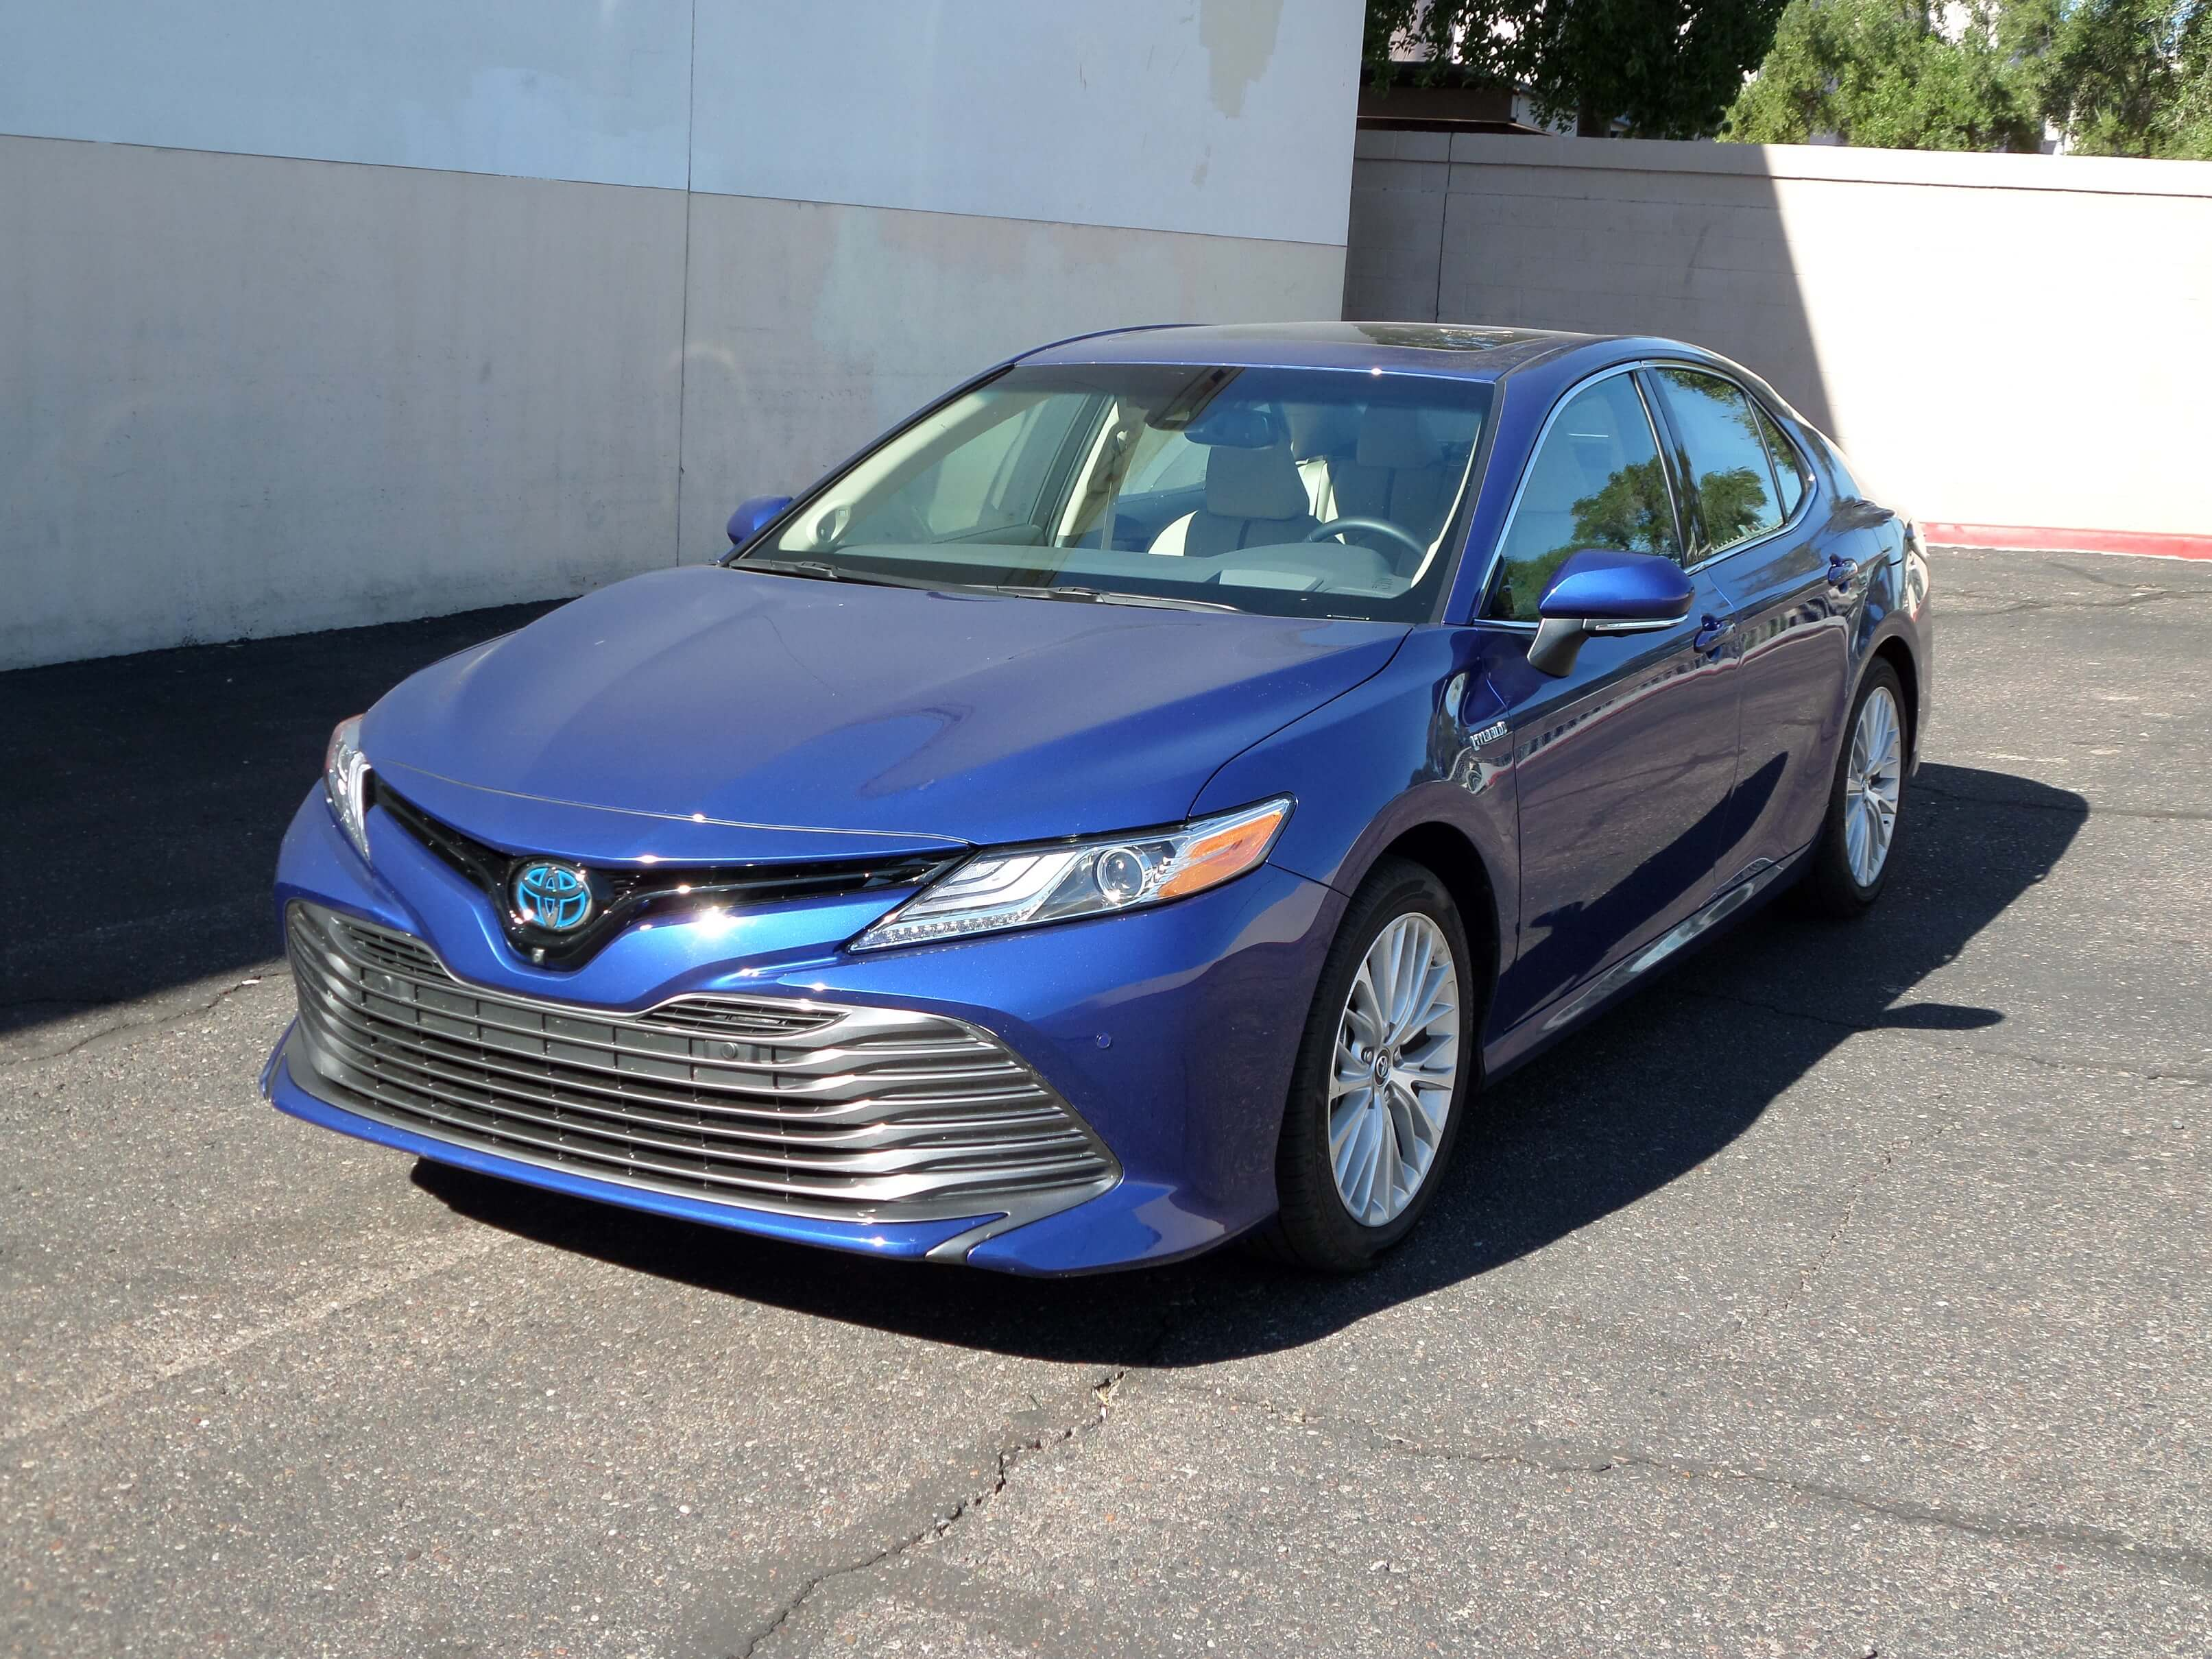 Toyota Camry Hybrid accessories model